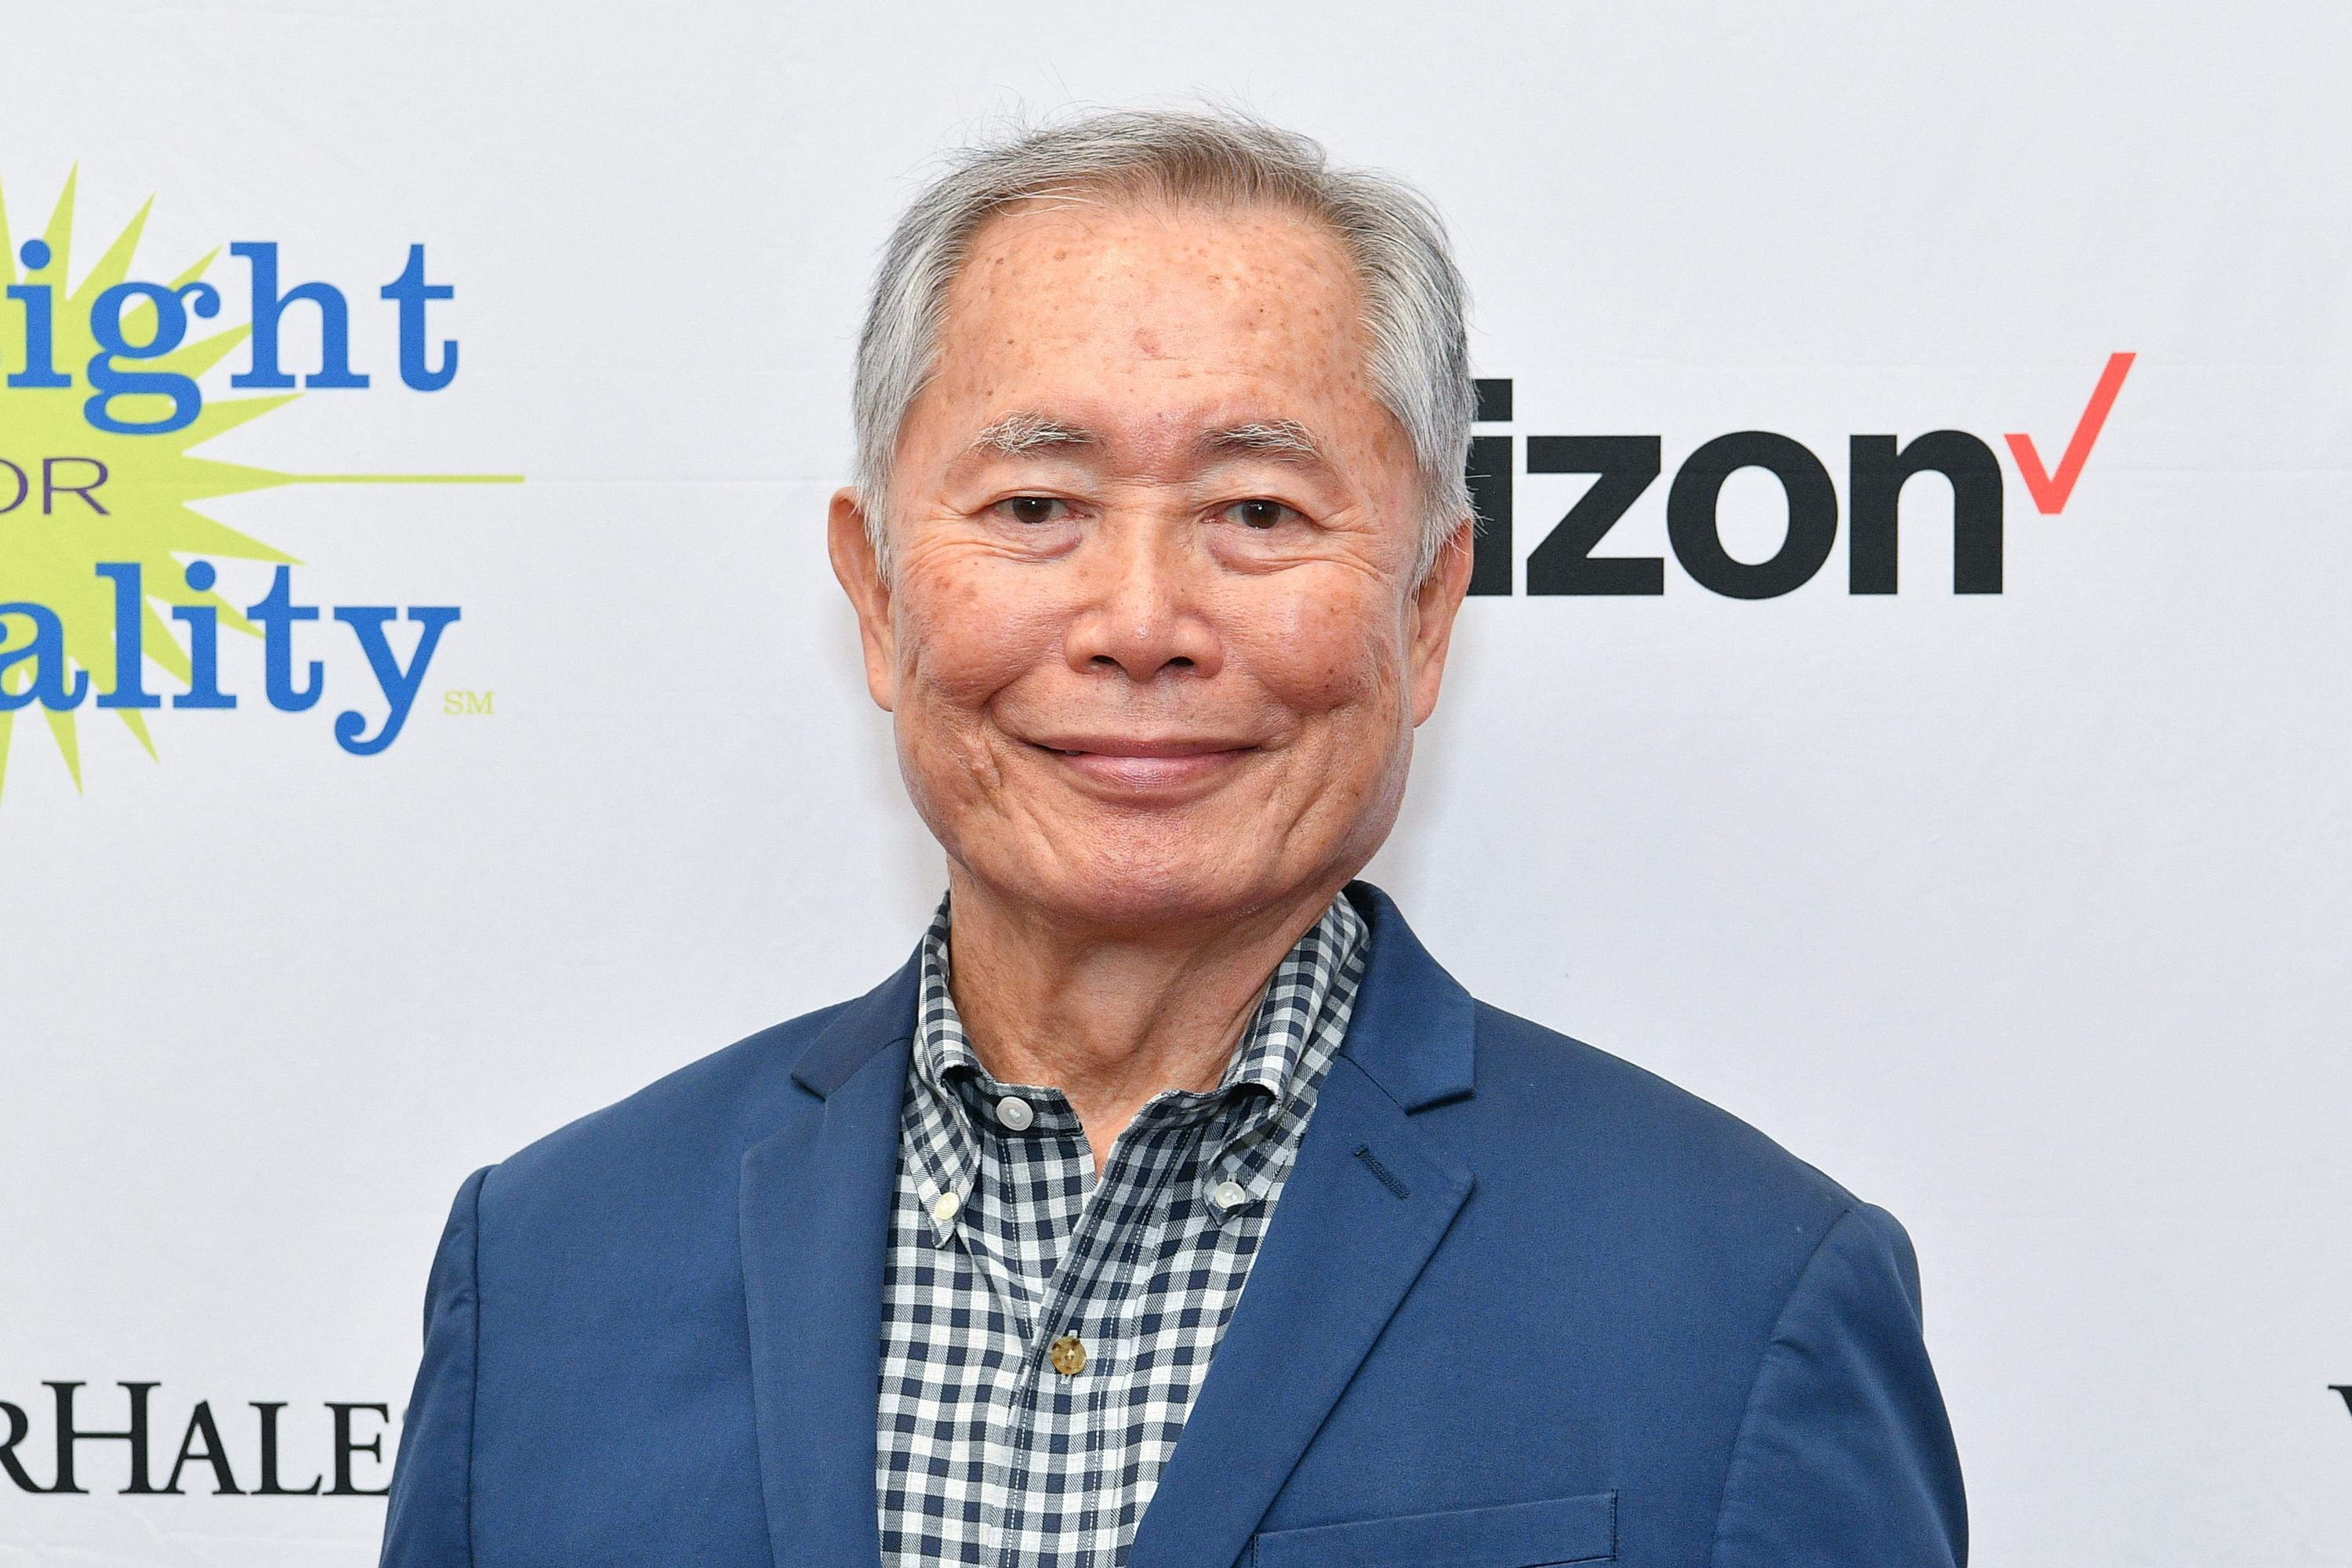 NEW YORK, NEW YORK - NOVEMBER 18: Honoree George Takei attends PFLAG Gives Thanks: Celebrating Inclusion in the Workplace on November 18, 2019 in New York City. (Photo by Dia Dipasupil/Getty Images for PFLAG)